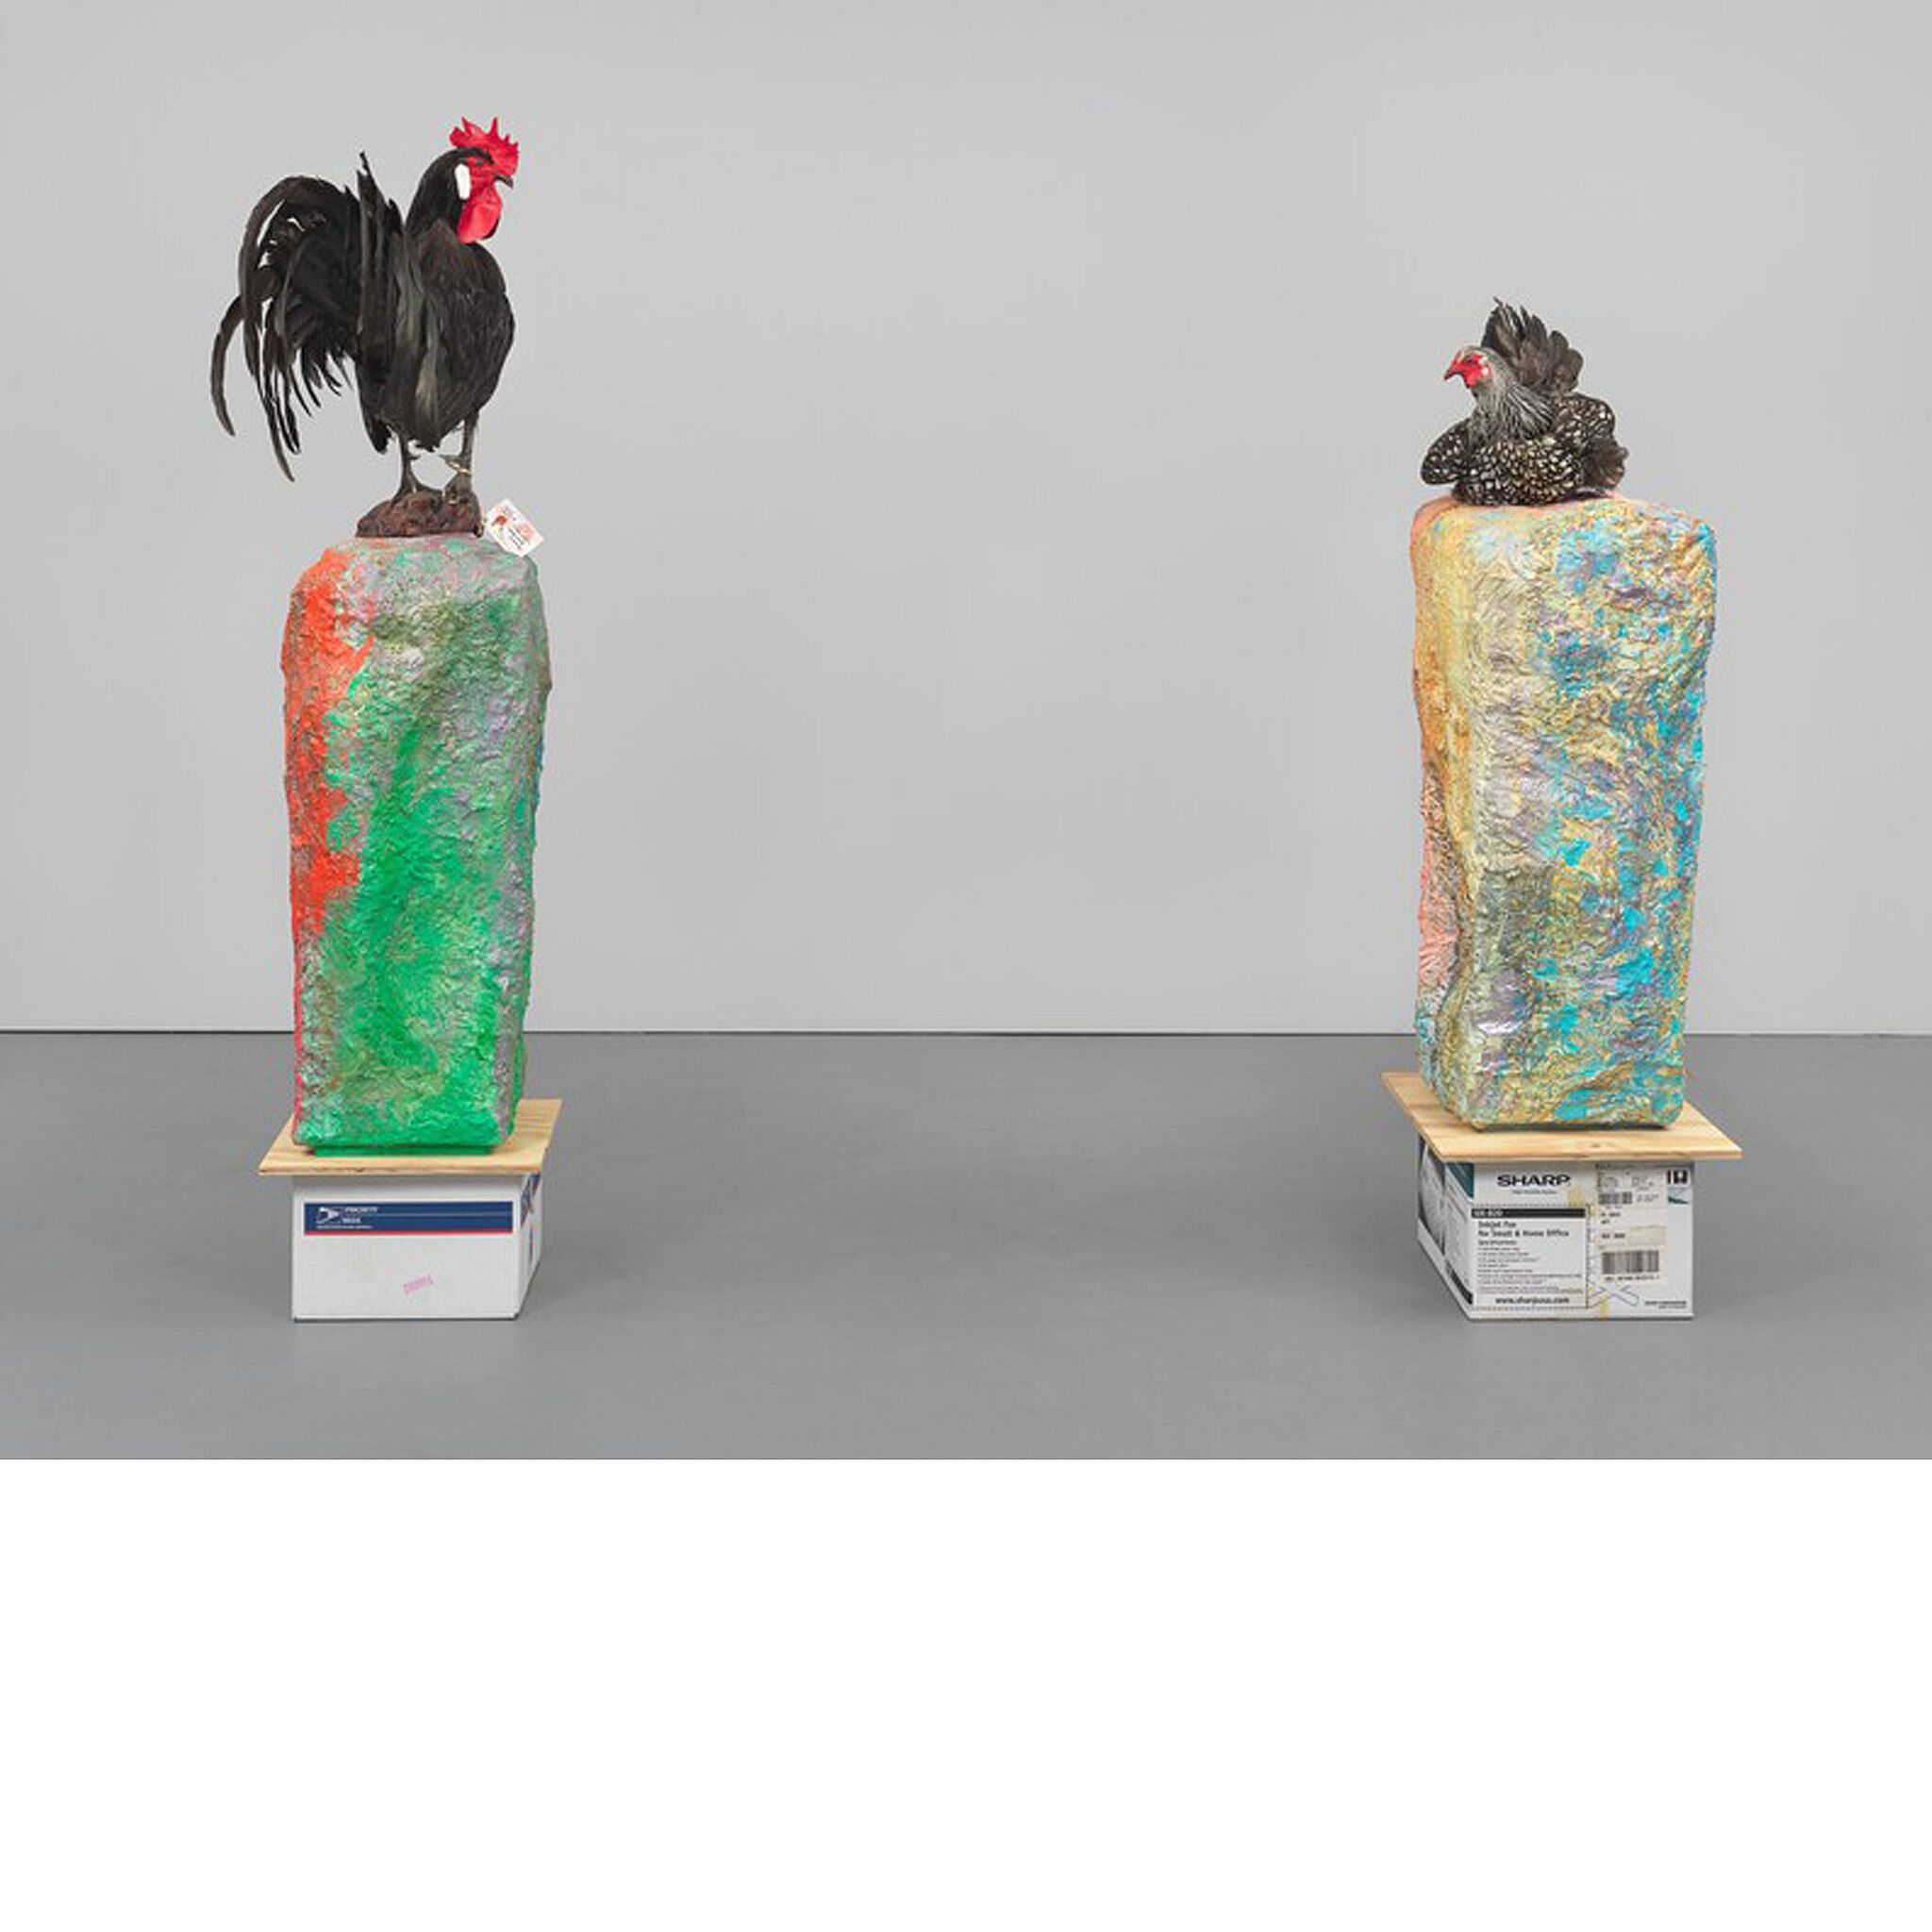 Rooster and chicken statues on top of colorful tablets.